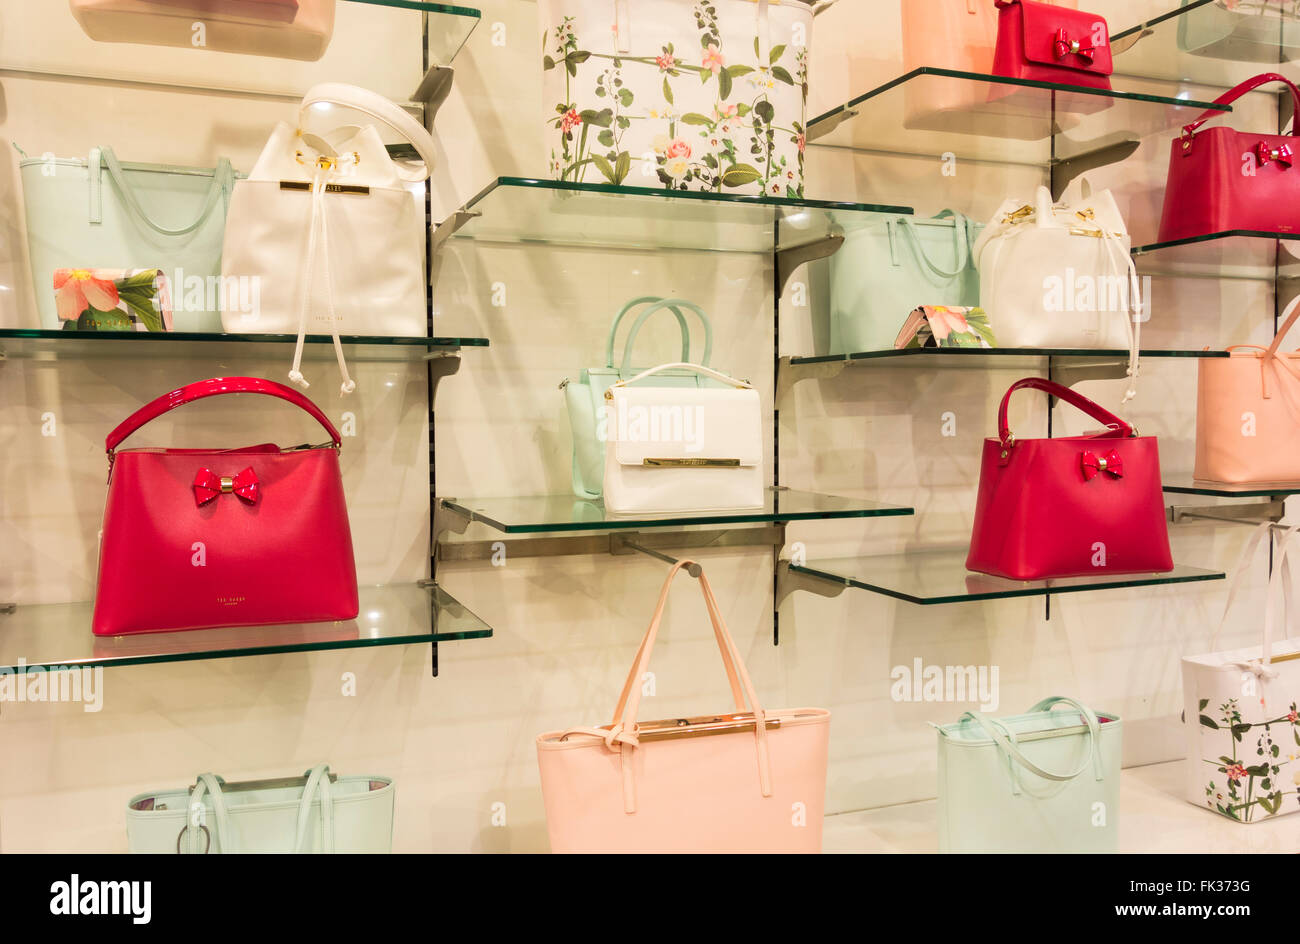 3fc2b68c8038 Ted Baker Store Stock Photos   Ted Baker Store Stock Images - Alamy